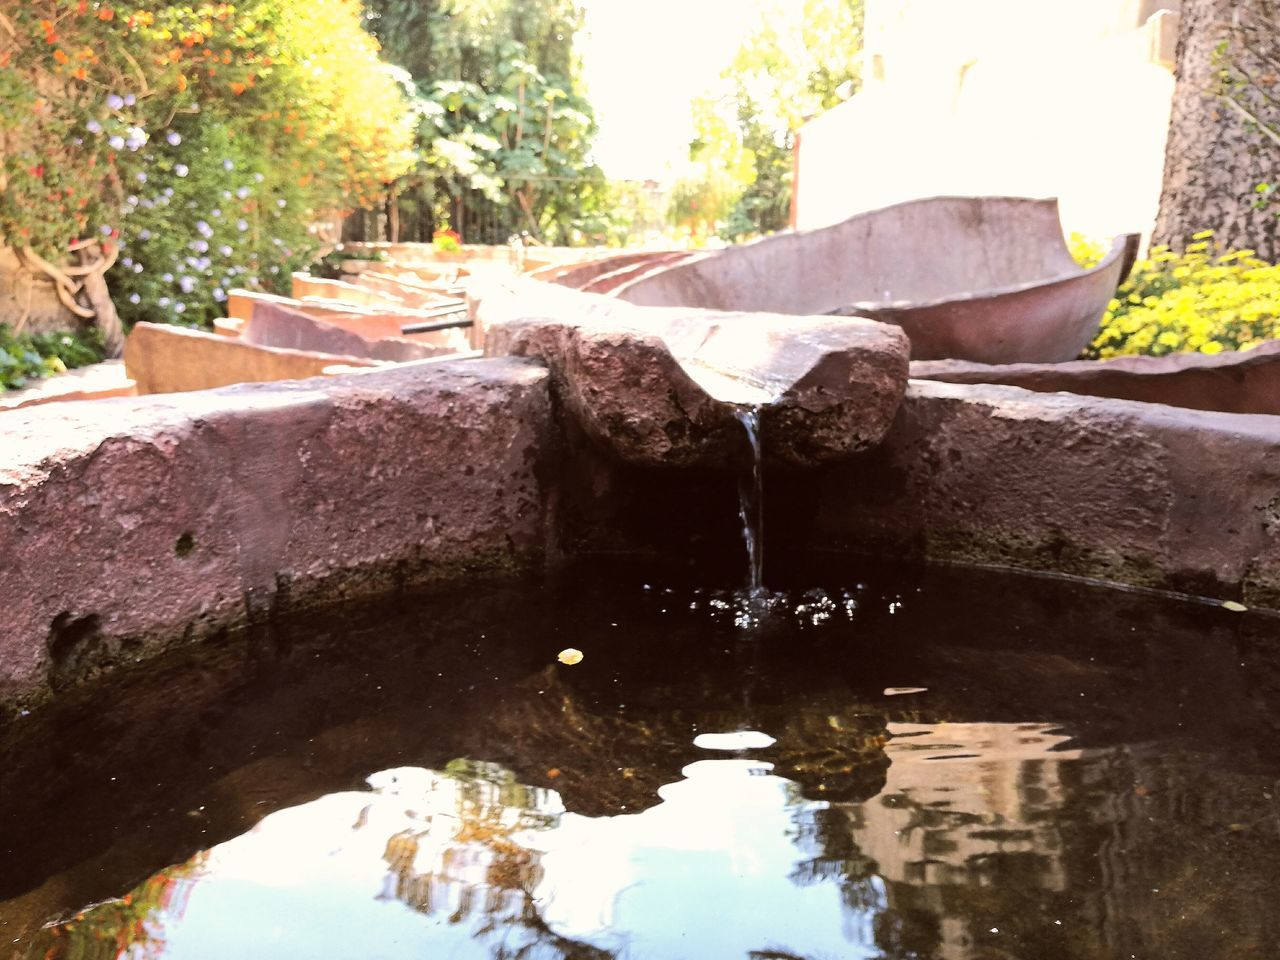 water, day, tree, outdoors, drinking fountain, no people, sunlight, nature, close-up, architecture, dripping